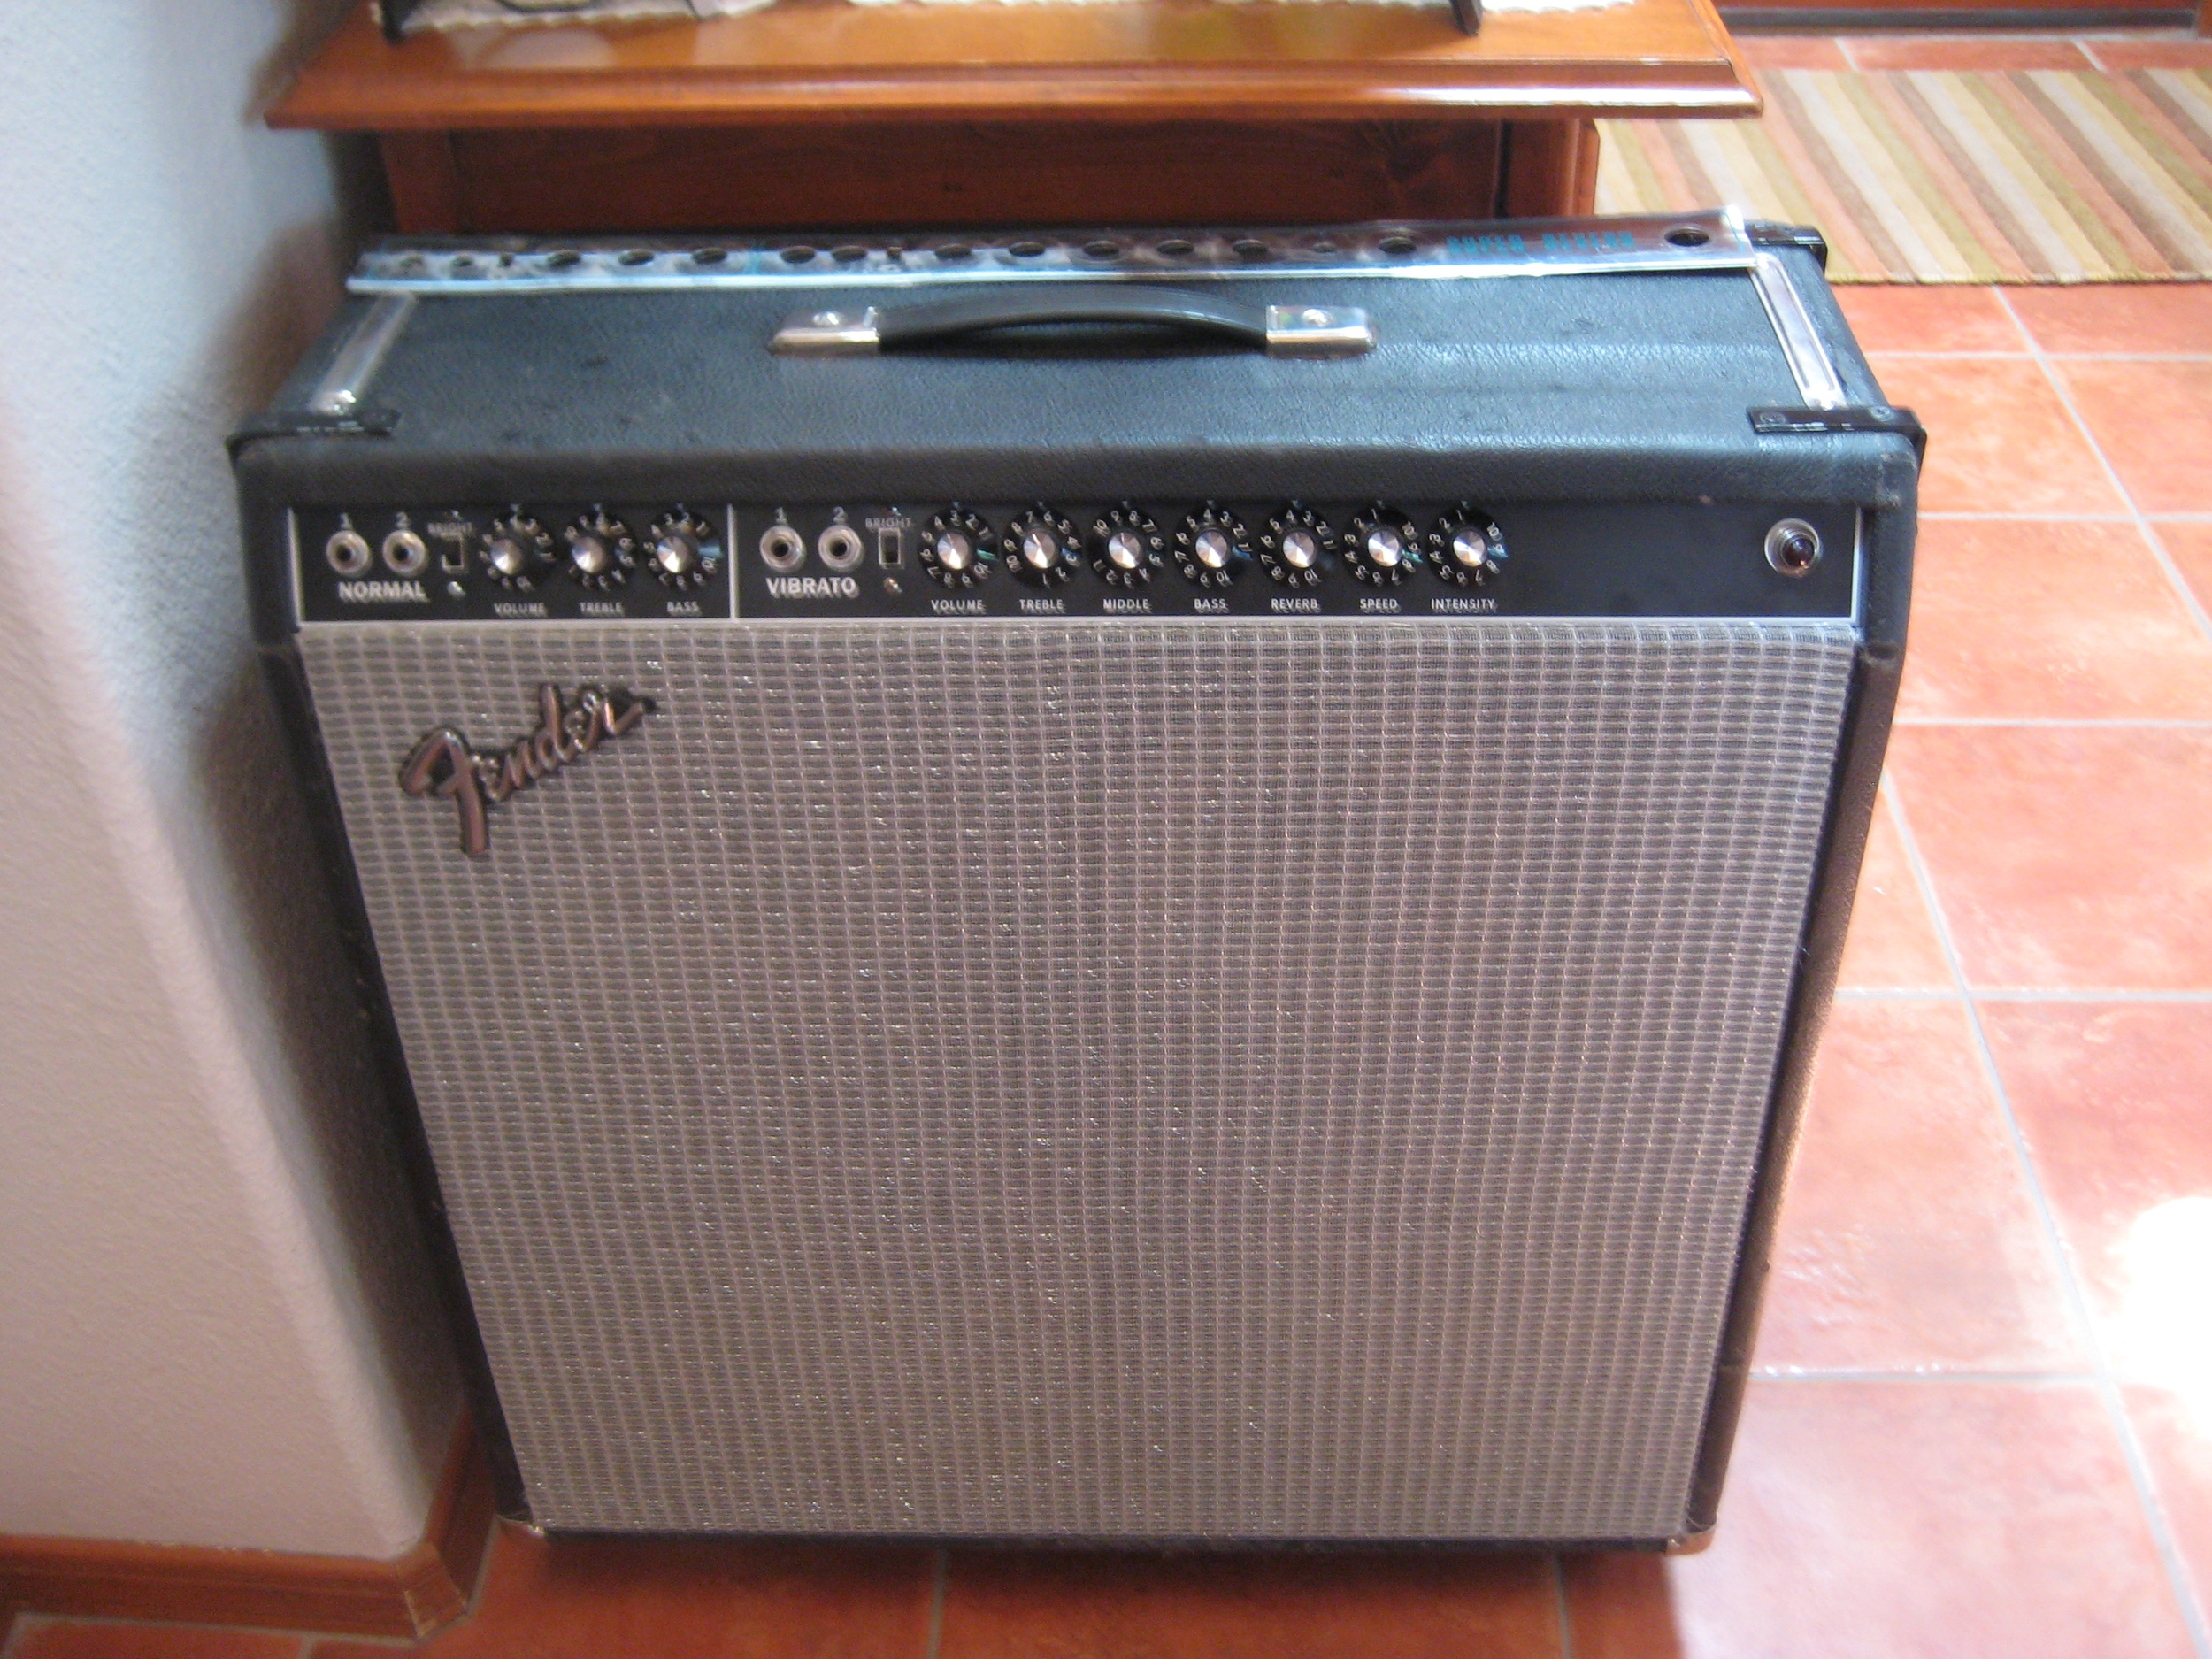 Vintage Fender Super Reverb that I worked on. It was in desperate need of of new caps and tubes. Gorgeous clean tone through those Alinco Speakers.